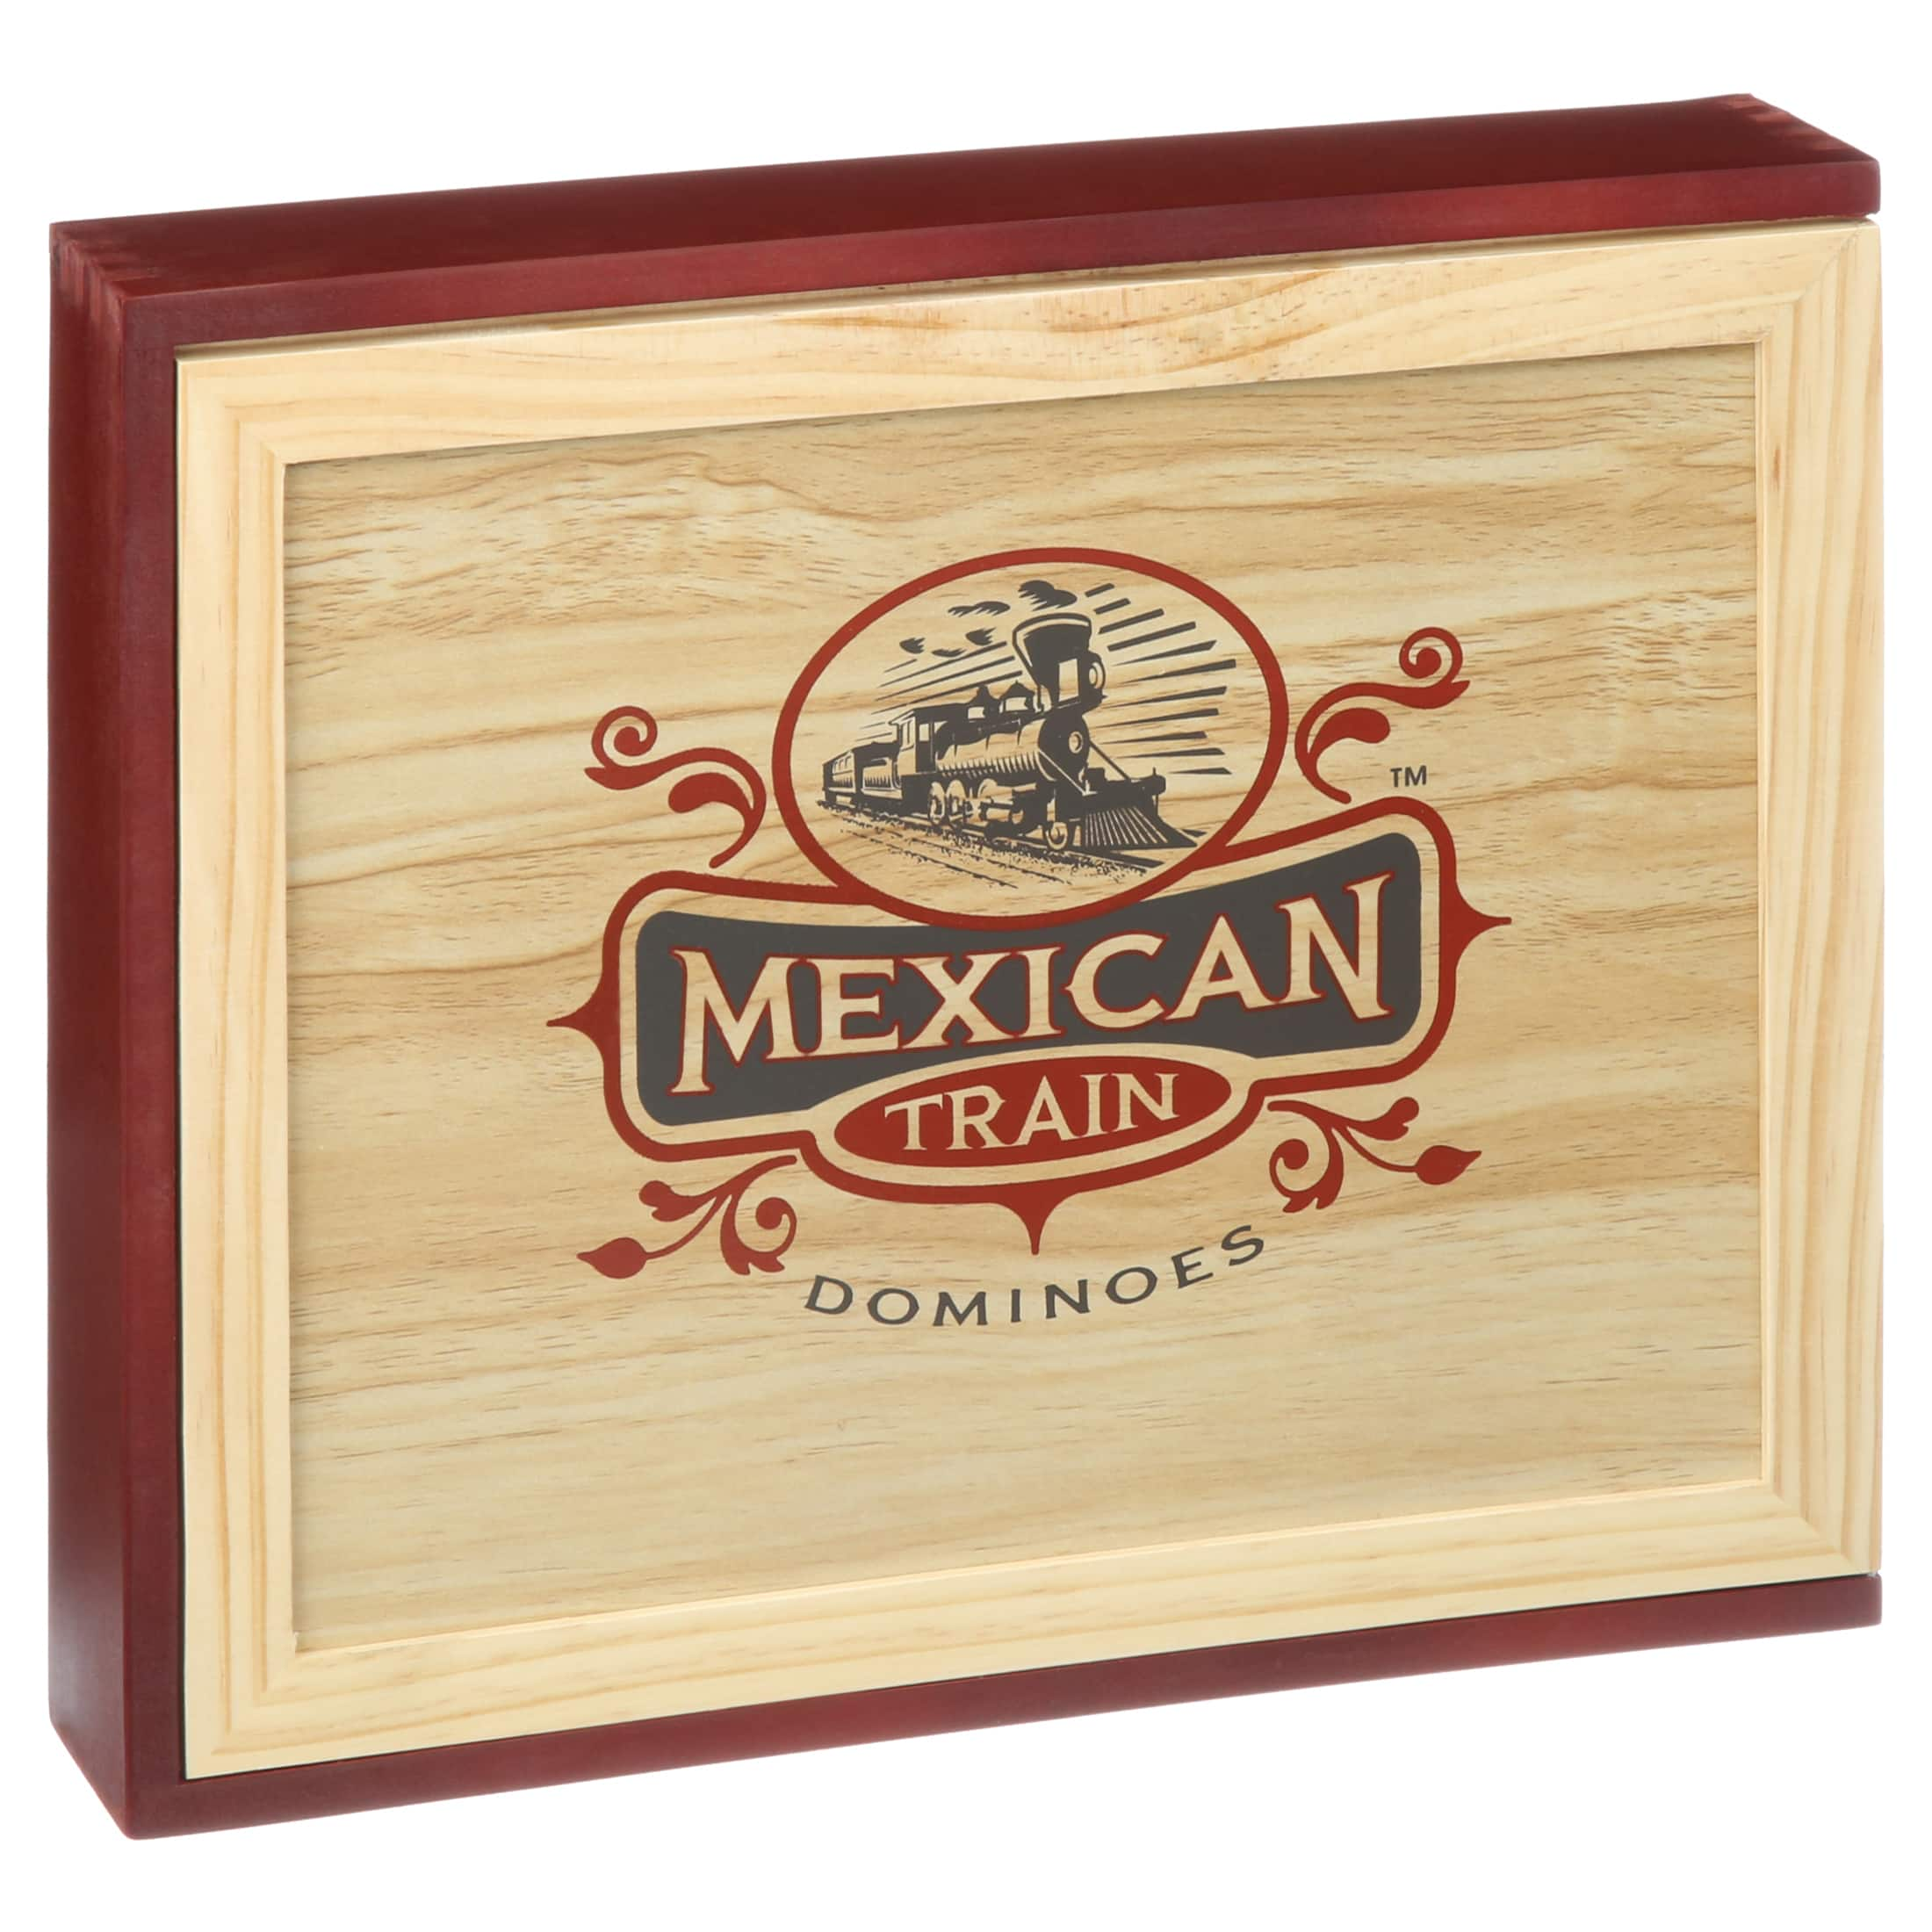 Front Porch Classics: Mexican Train Dominoes Box Set $12 + Free Shipping w/ Walmart+ or $35+